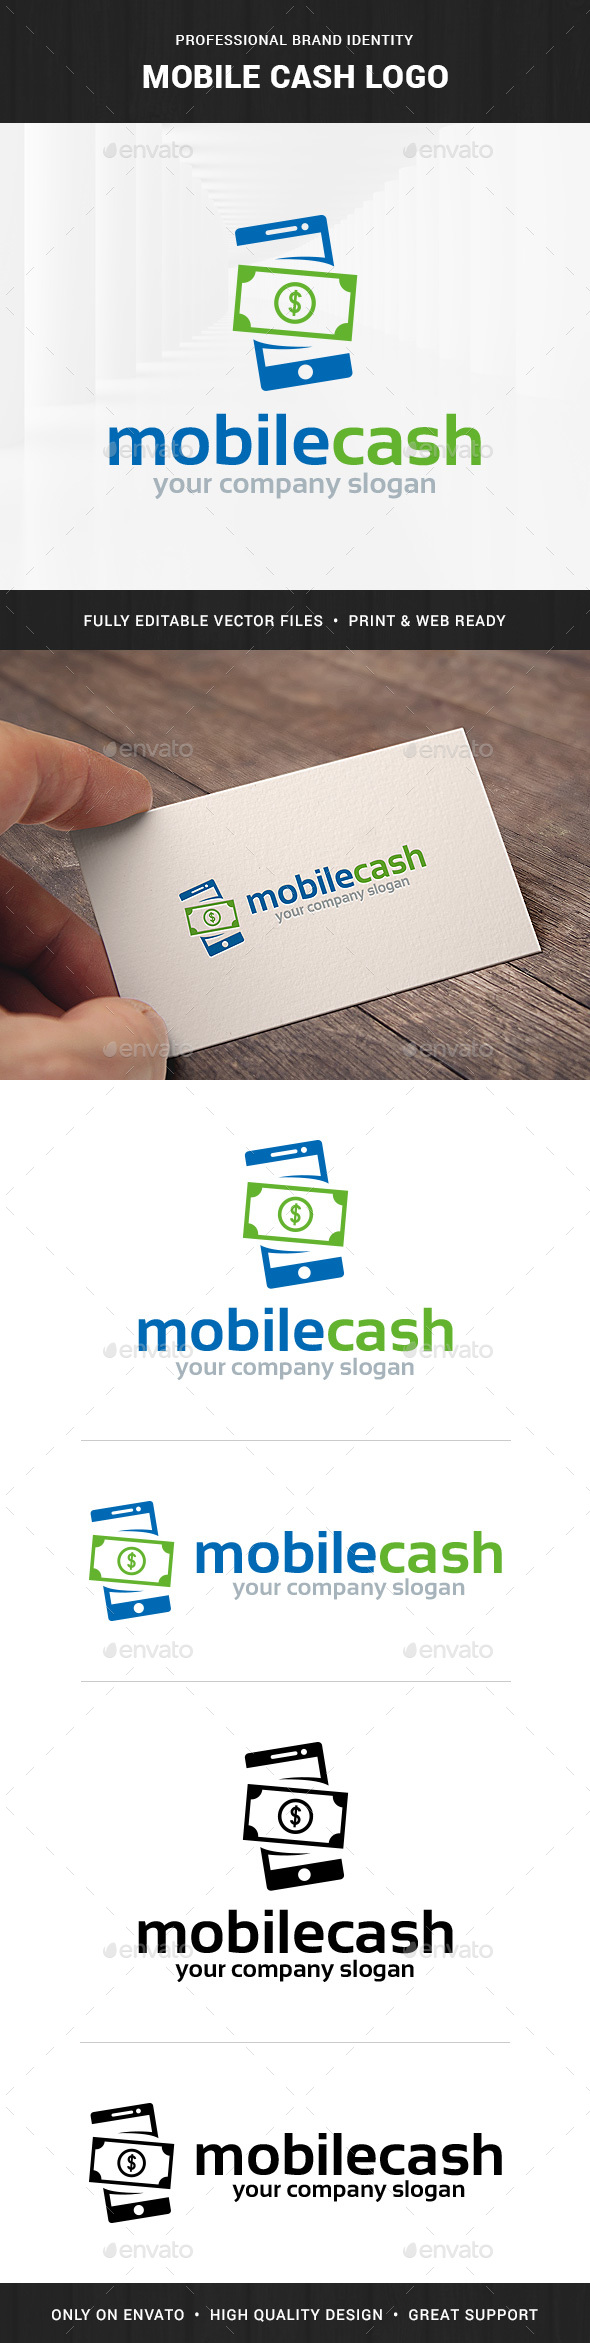 Mobile Cash Logo Template - Objects Logo Templates